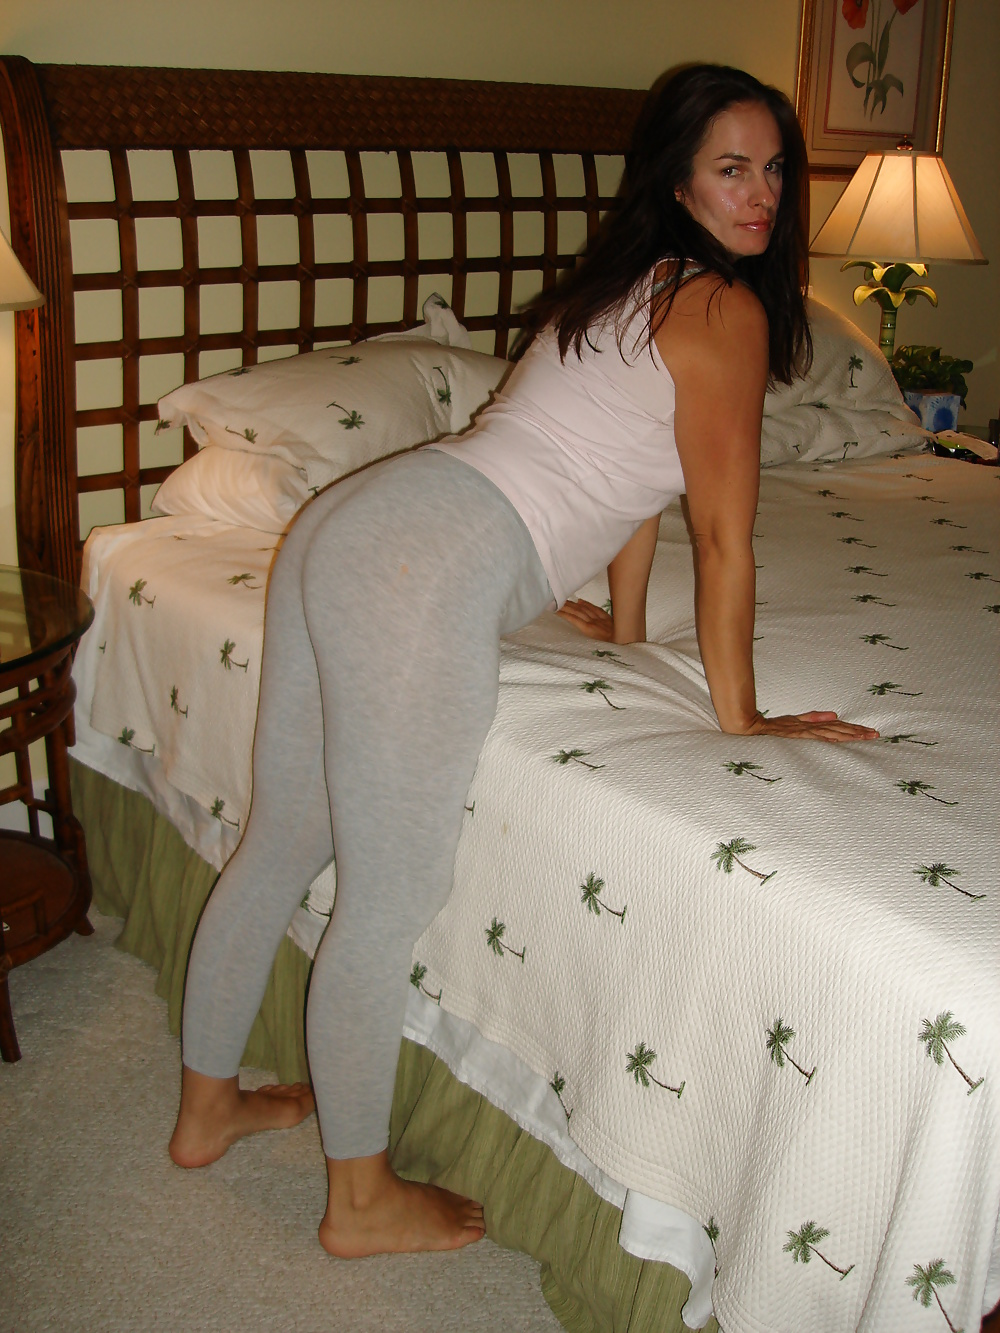 Horny Milf In Yoga Pants Teasing In Her Bed - Fuqer Photo-3646